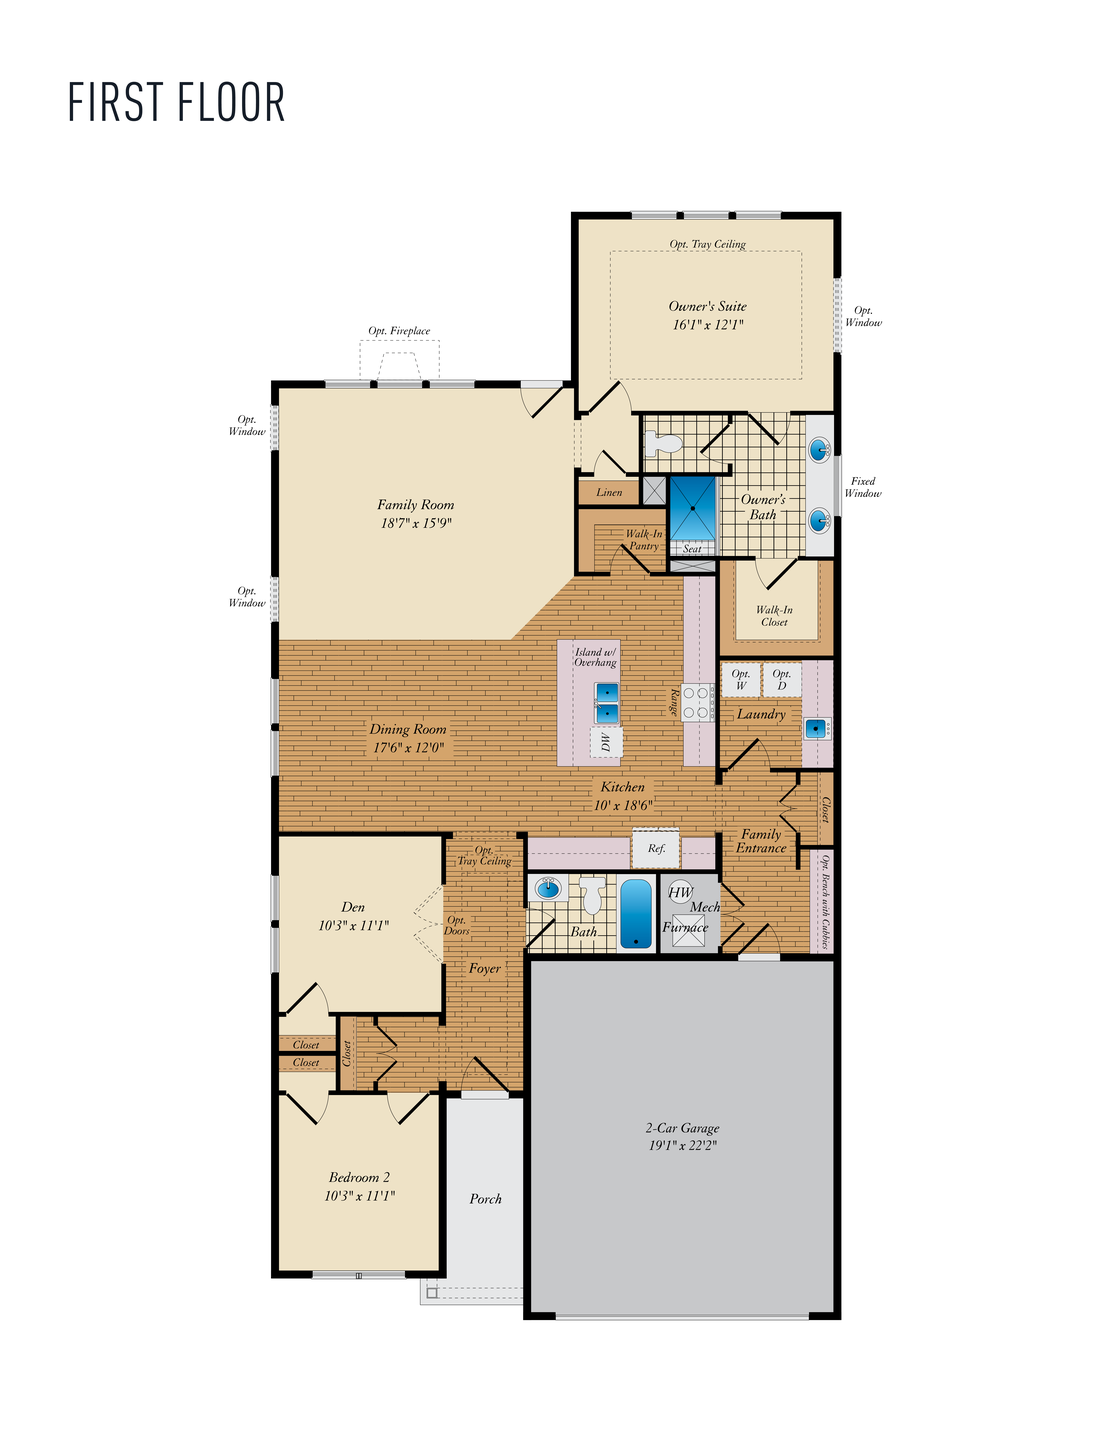 First Floor. Ives Home with 2 Bedrooms